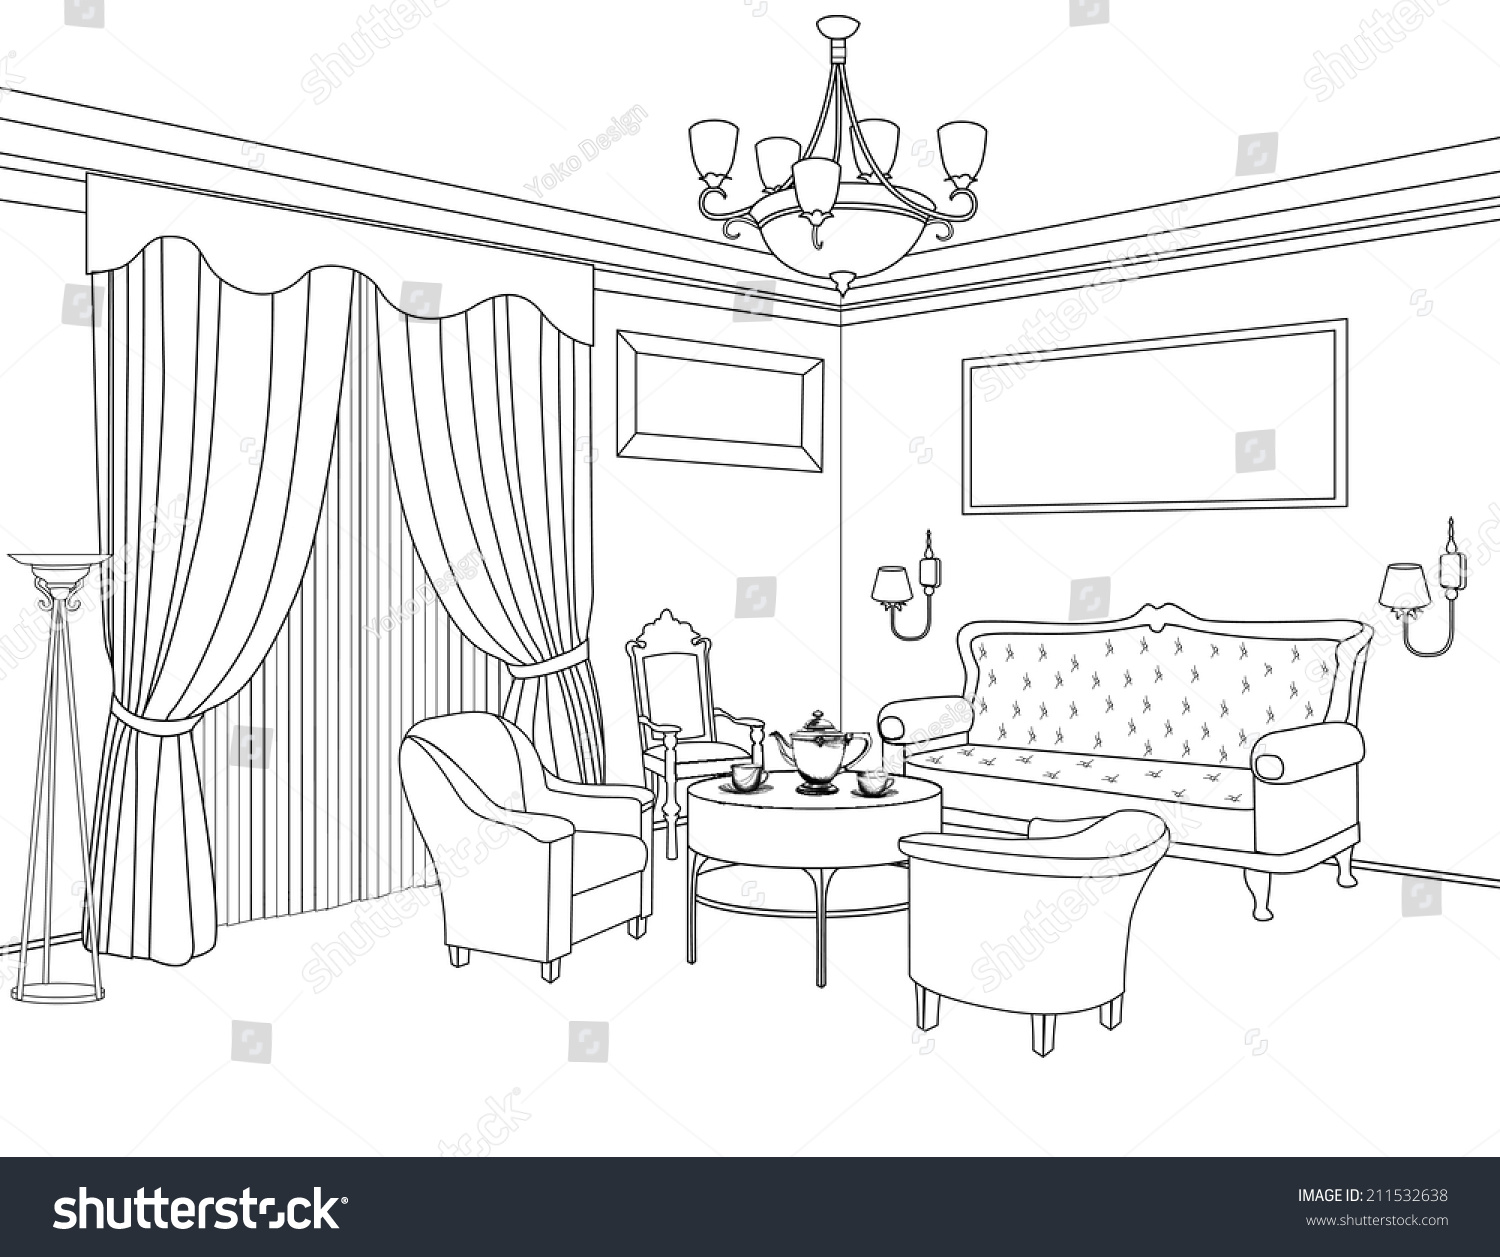 Furniture Sketch Images Stock Photos amp Vectors  Shutterstock